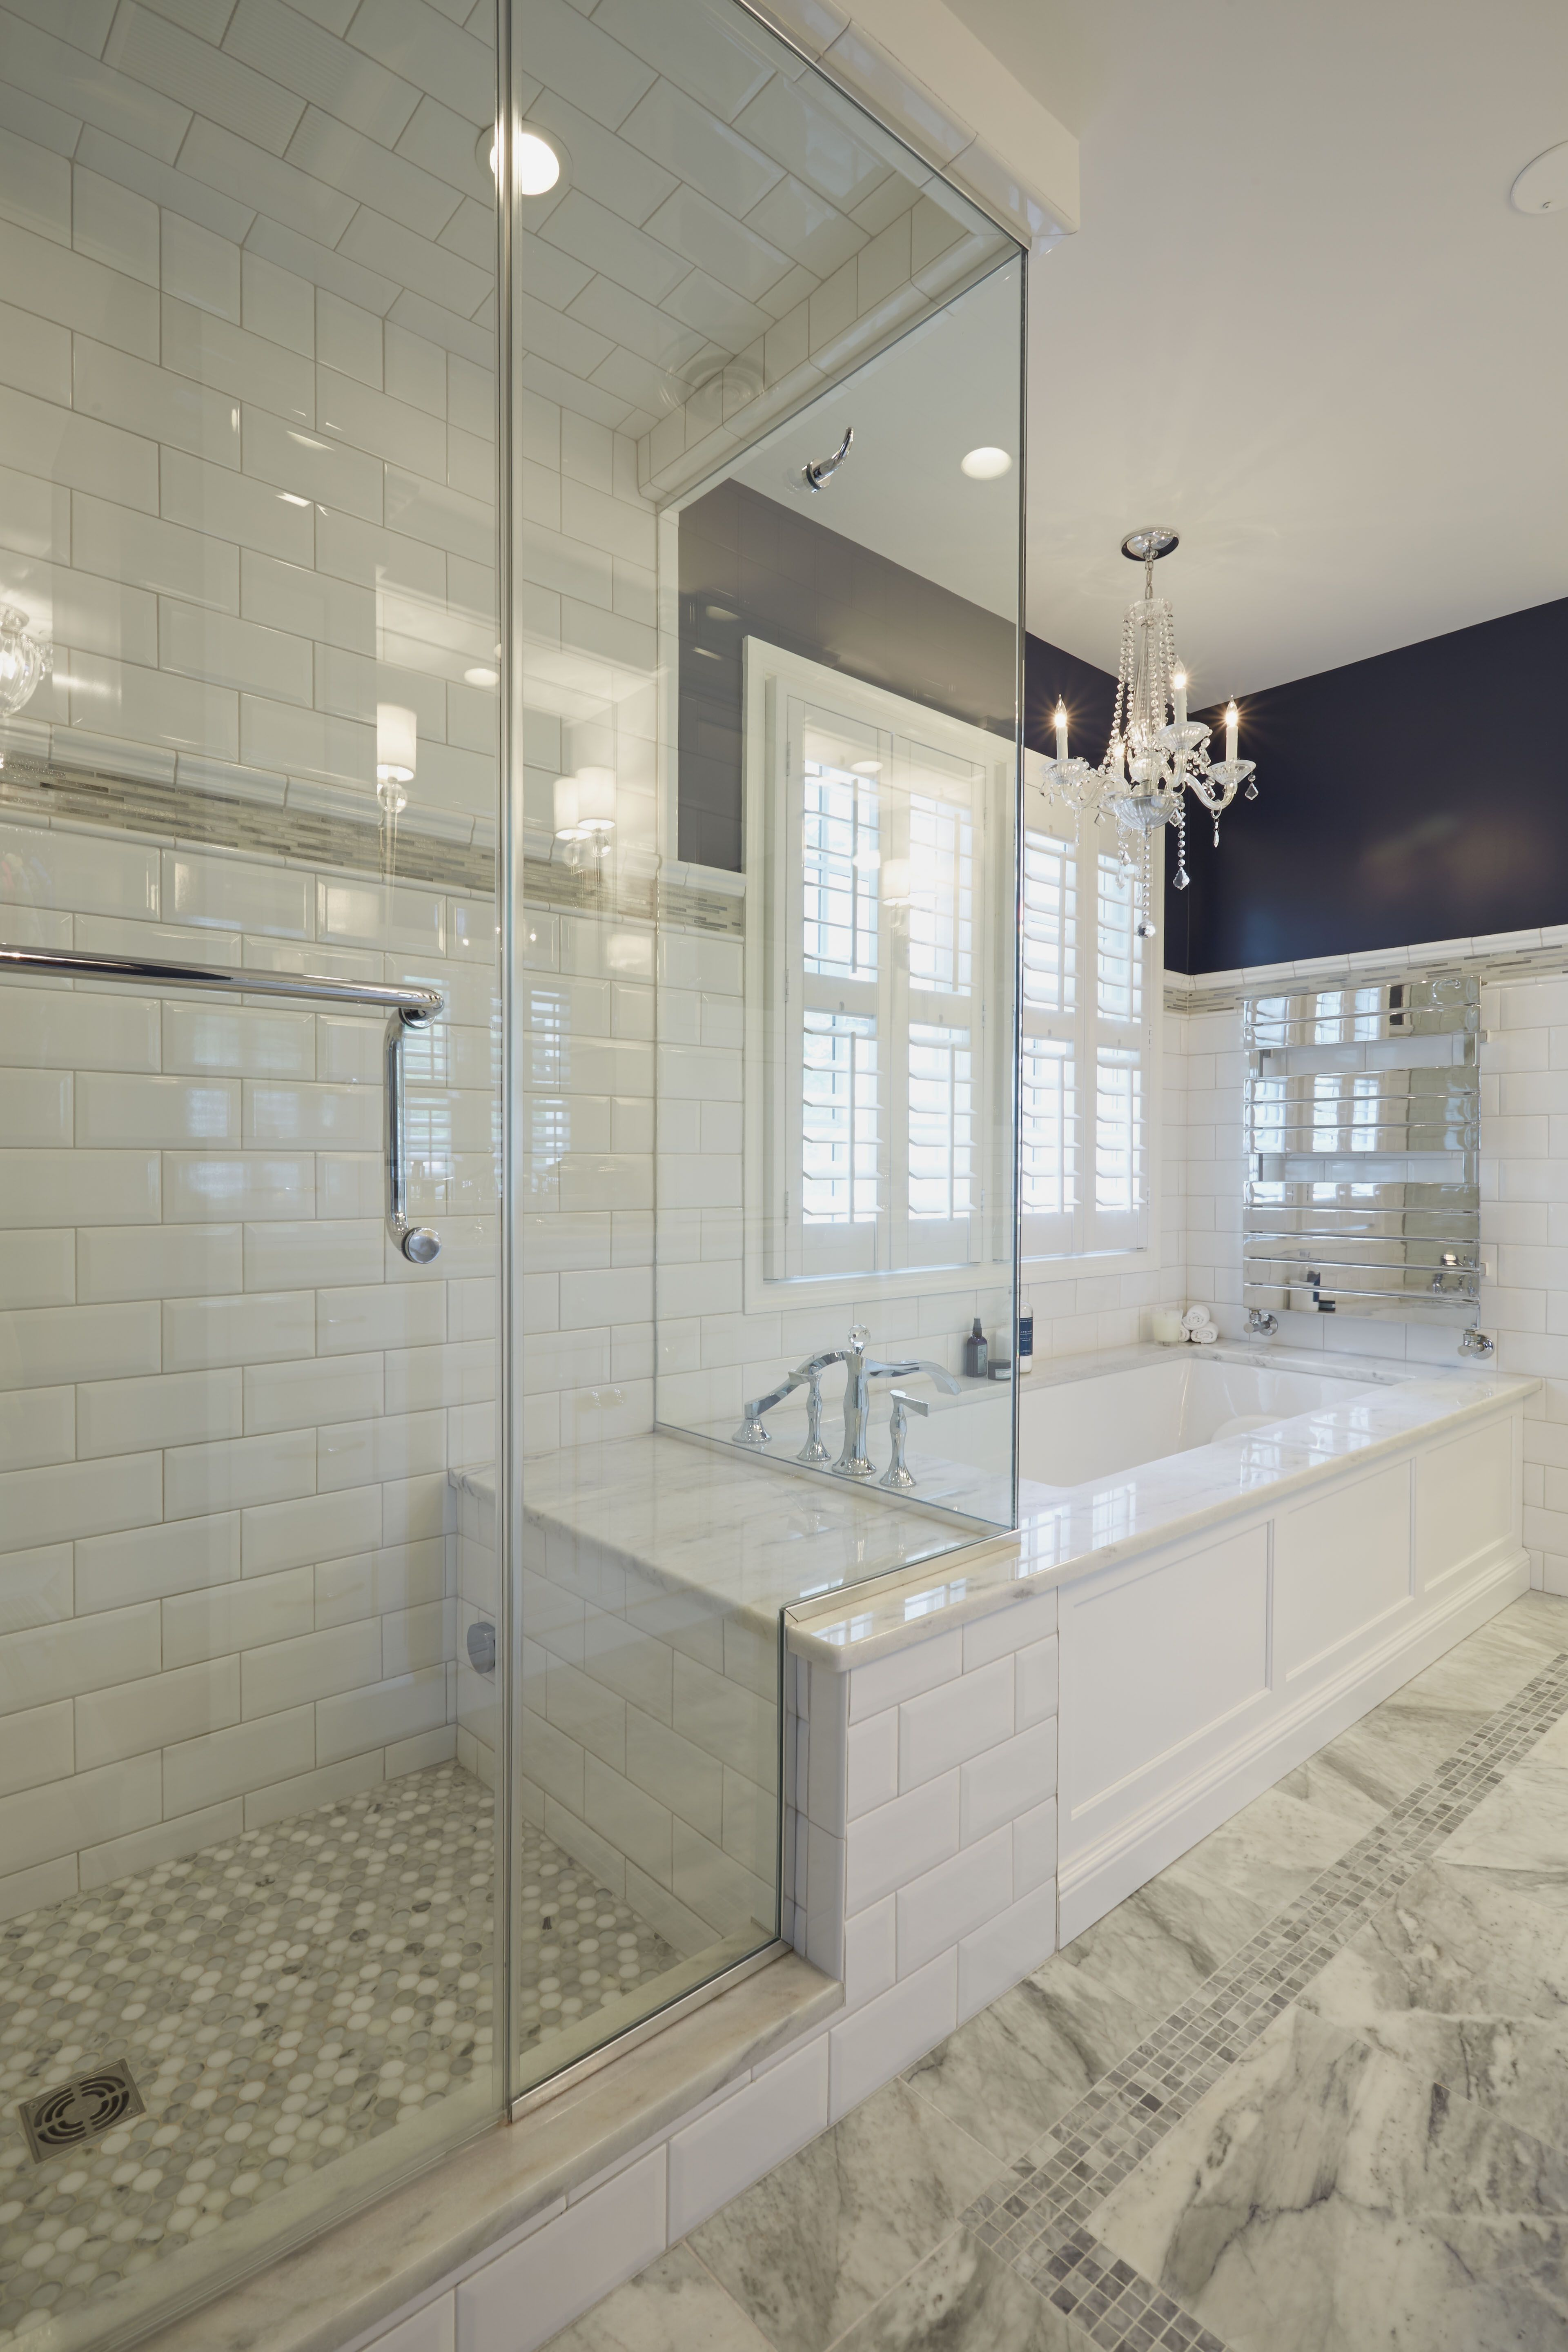 Glass Tubs Depiction Of Benefits Of Glass Enclosed Showers Bathroom Design